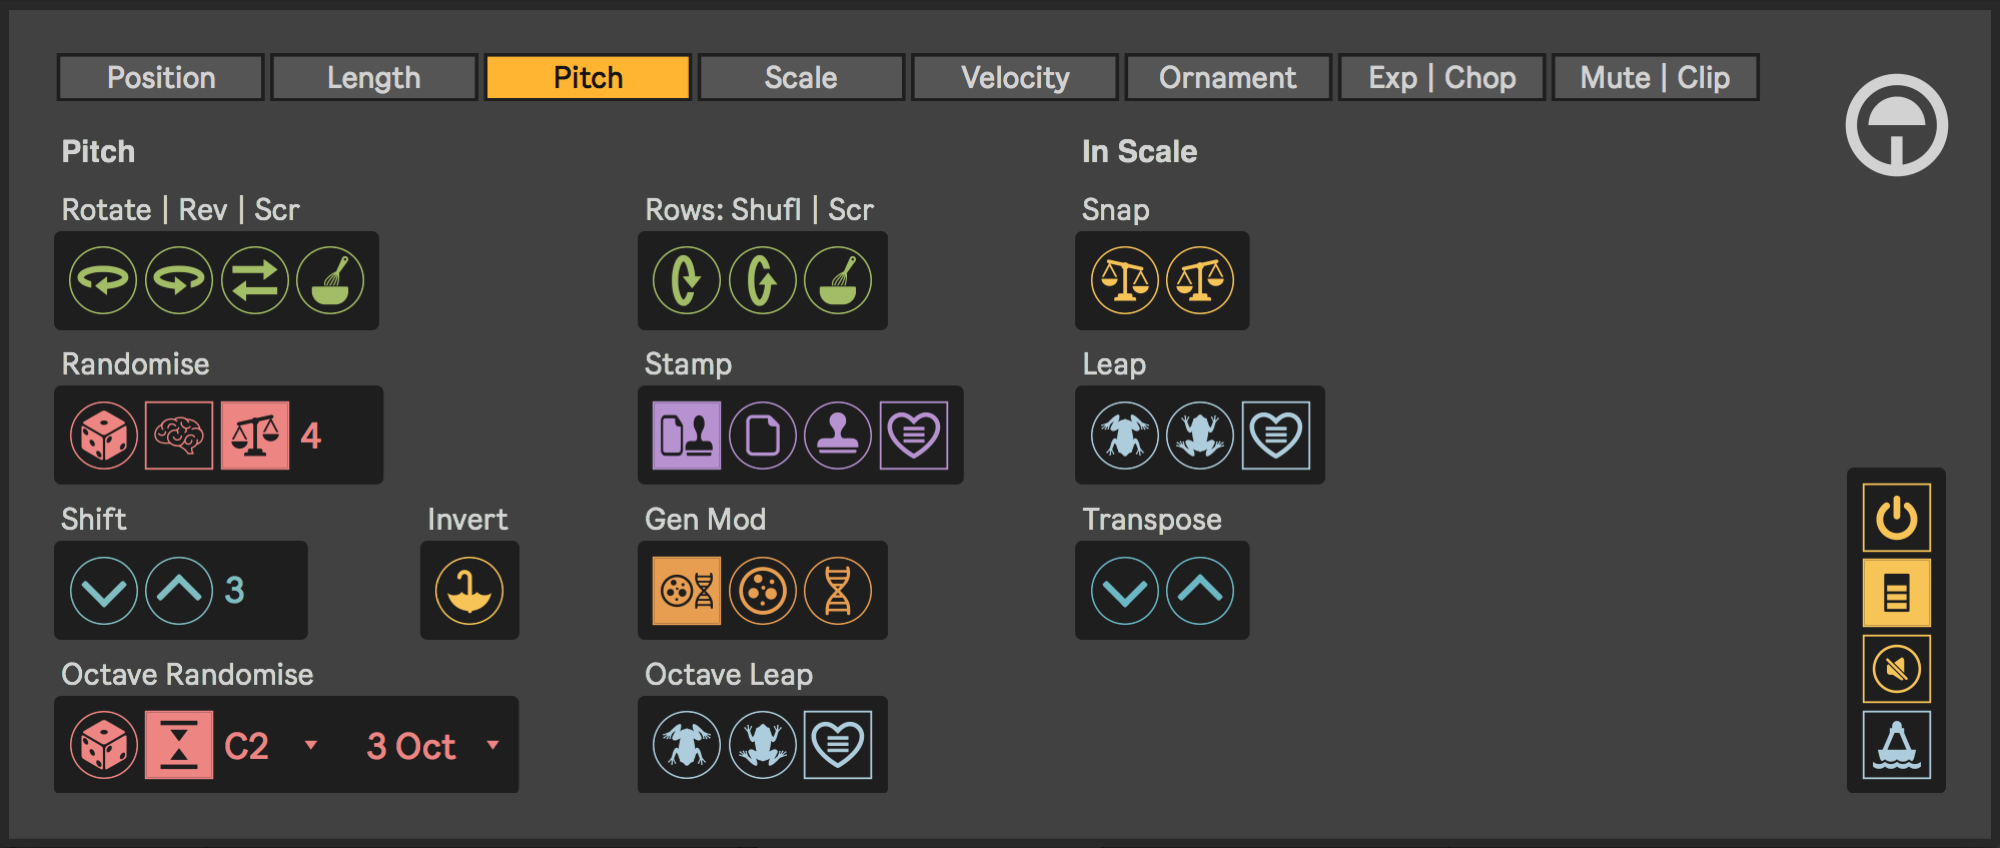 The Pitch edit page of Tranz4ma's graphical user interface.